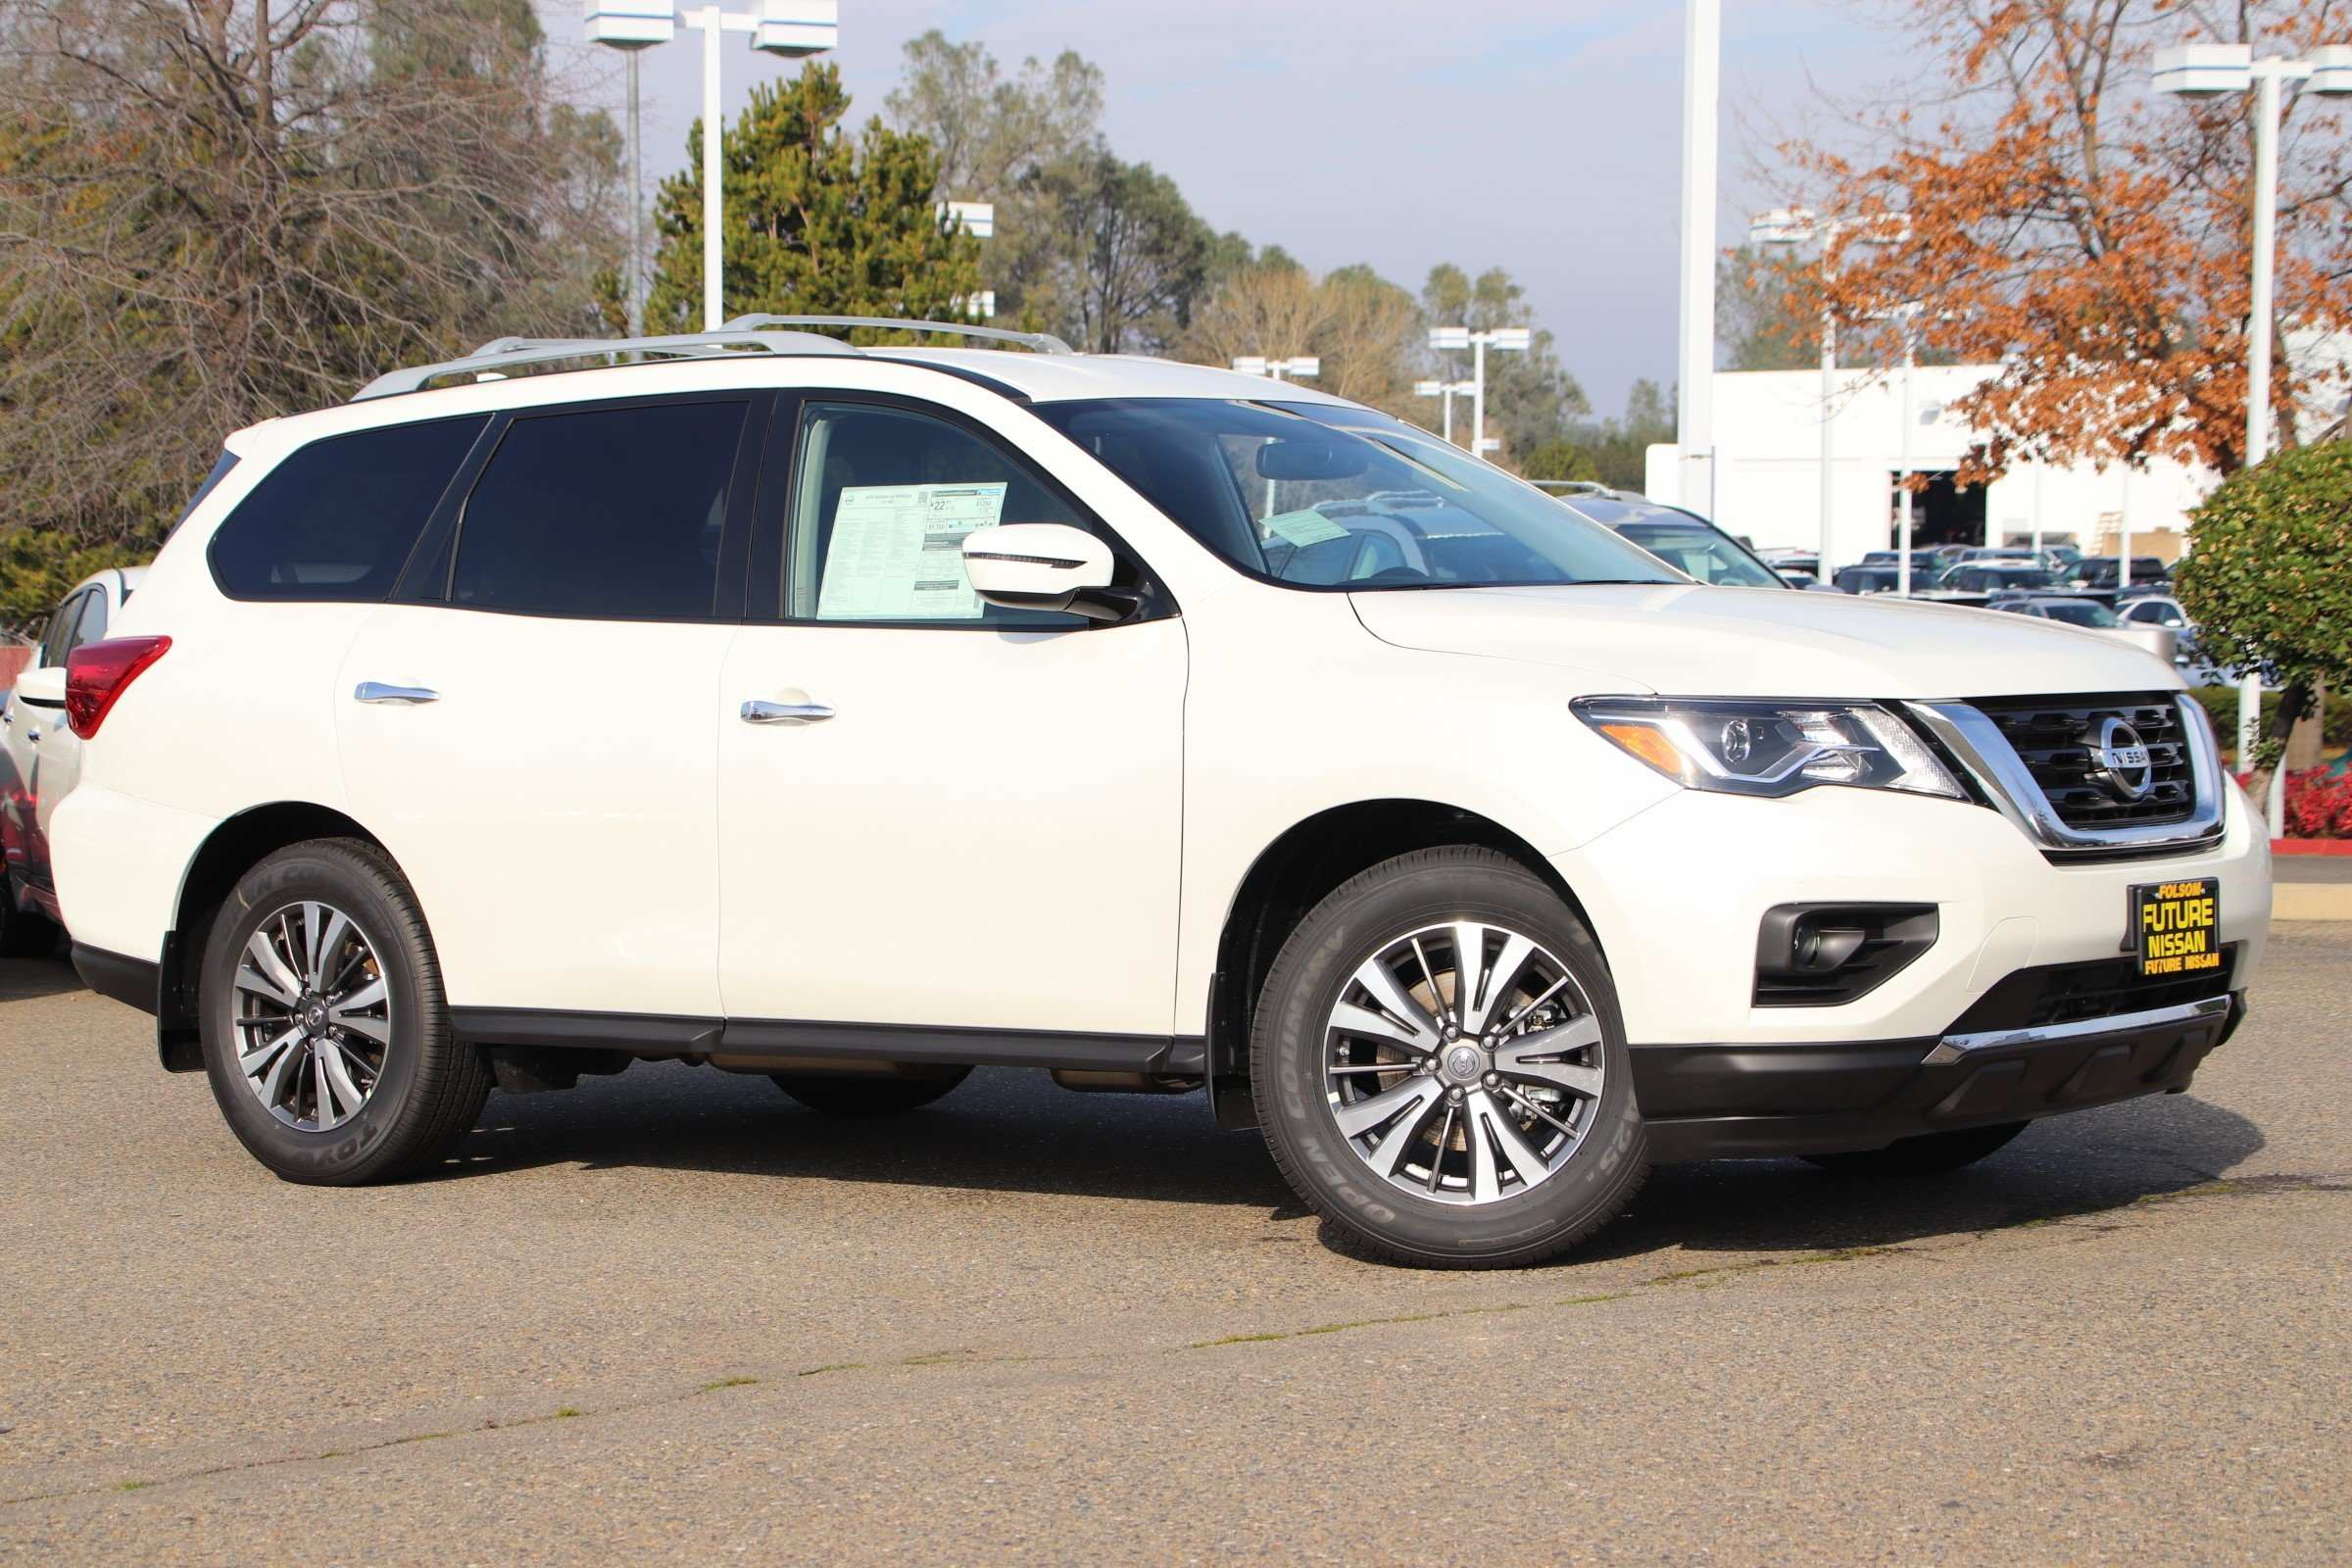 56 The Best 2019 Nissan Pathfinder Picture